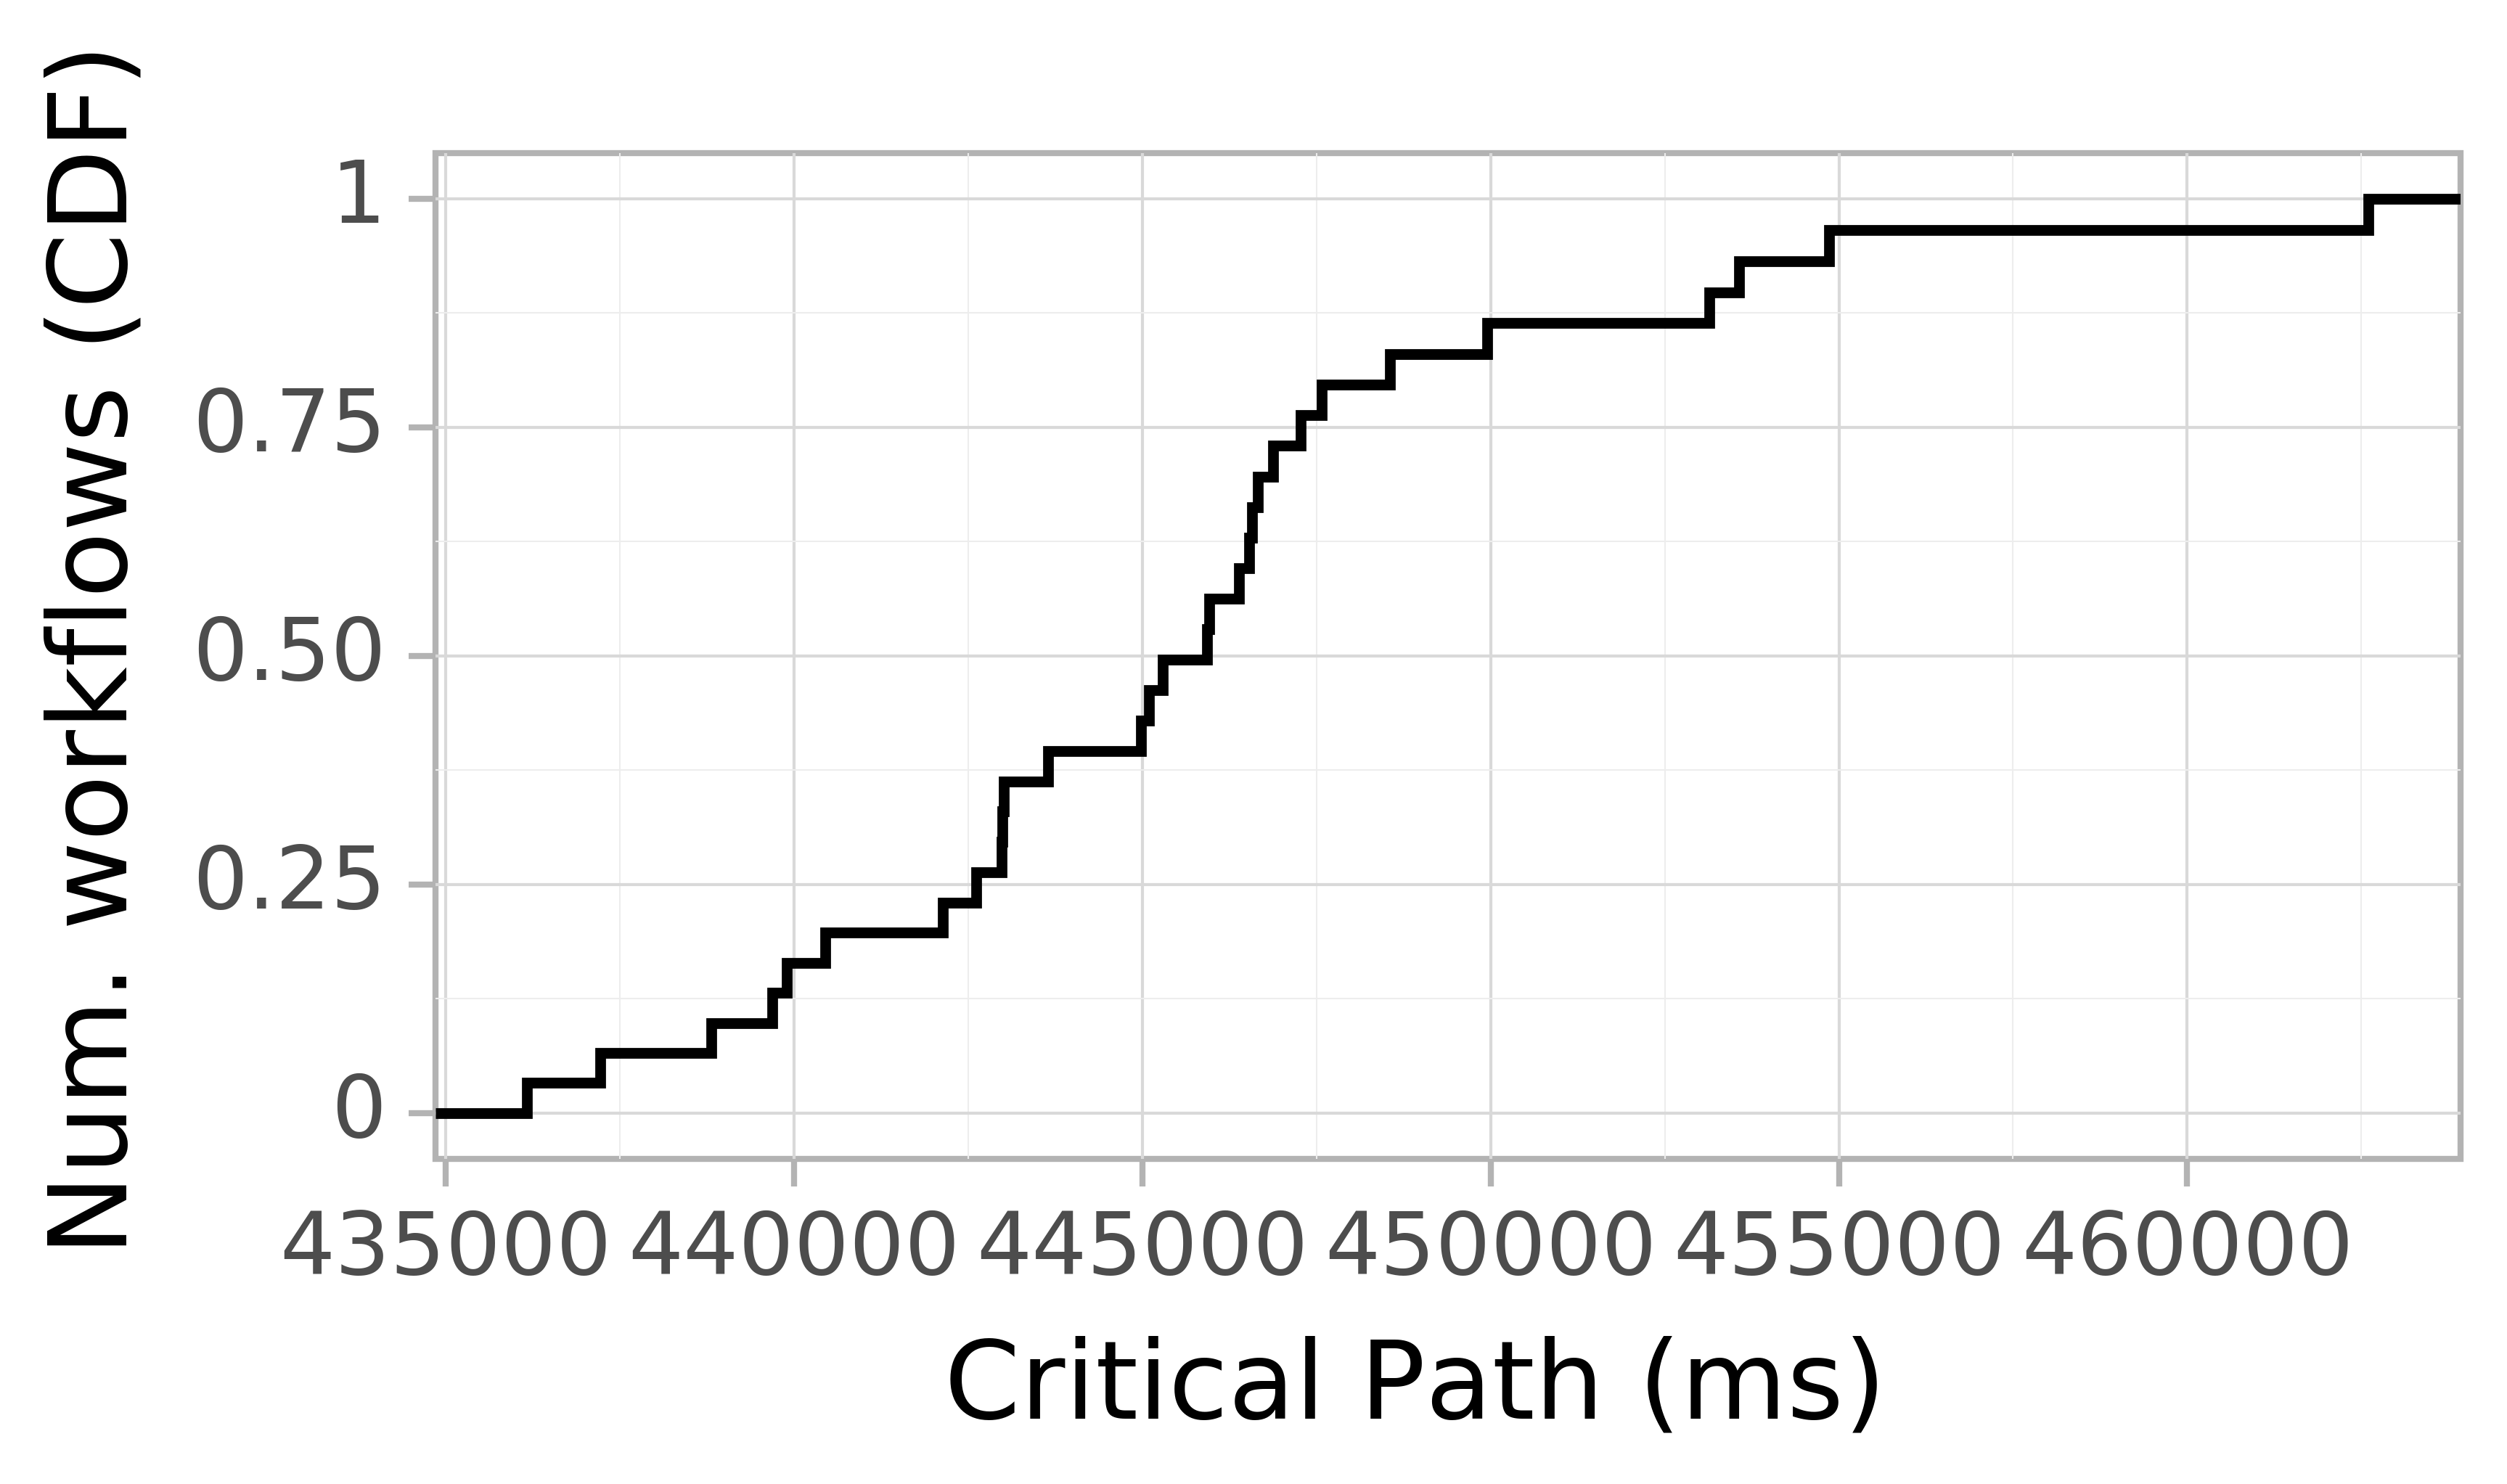 Job runtime CDF graph for the askalon-new_ee48 trace.